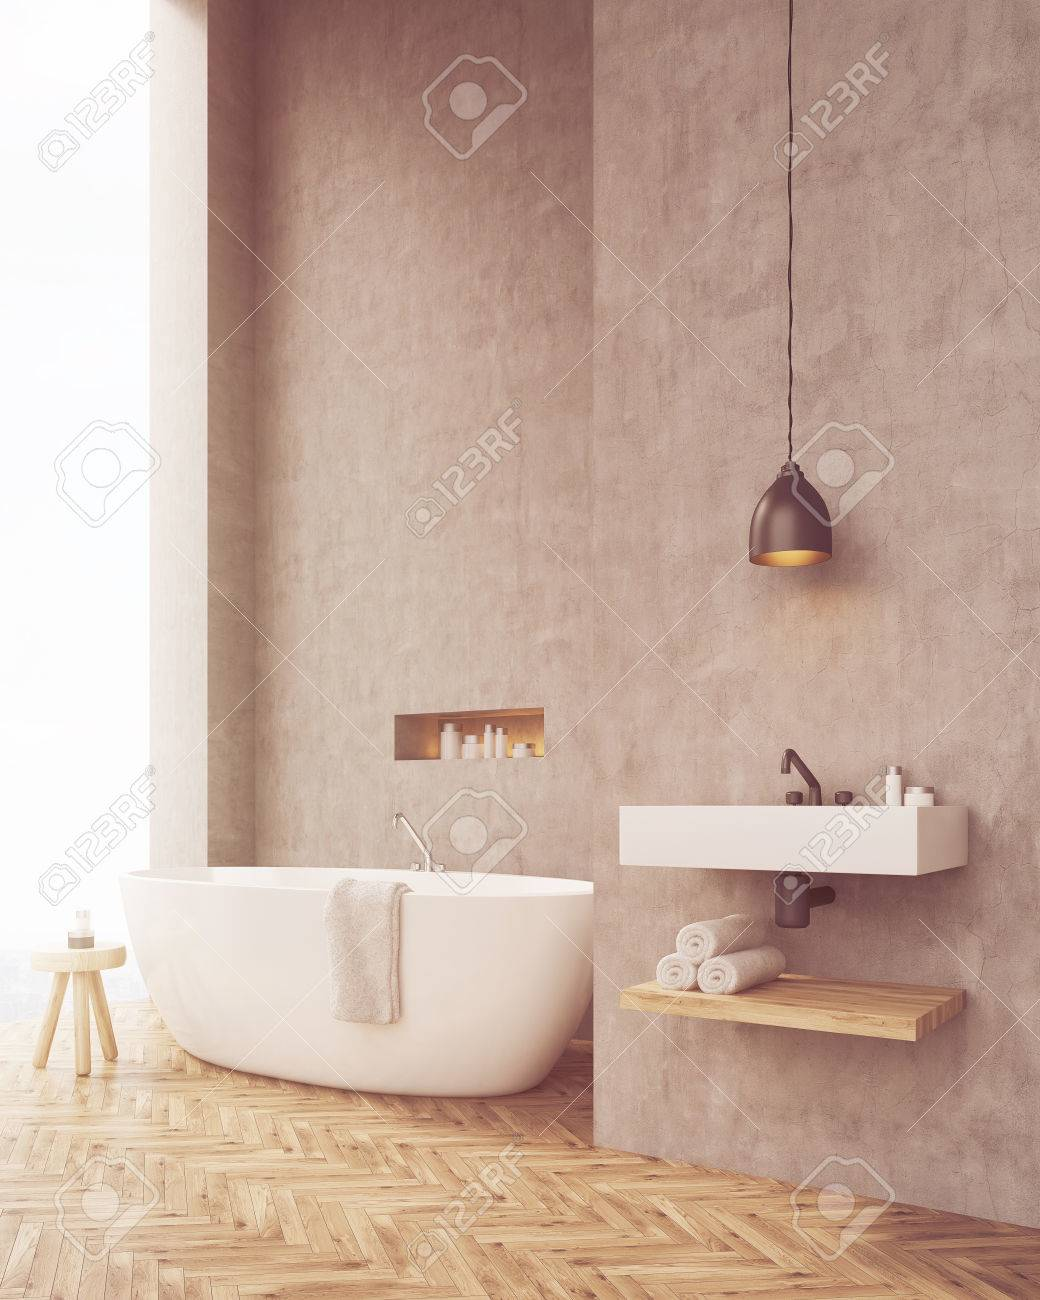 Badezimmer Handtücher Stock Photo